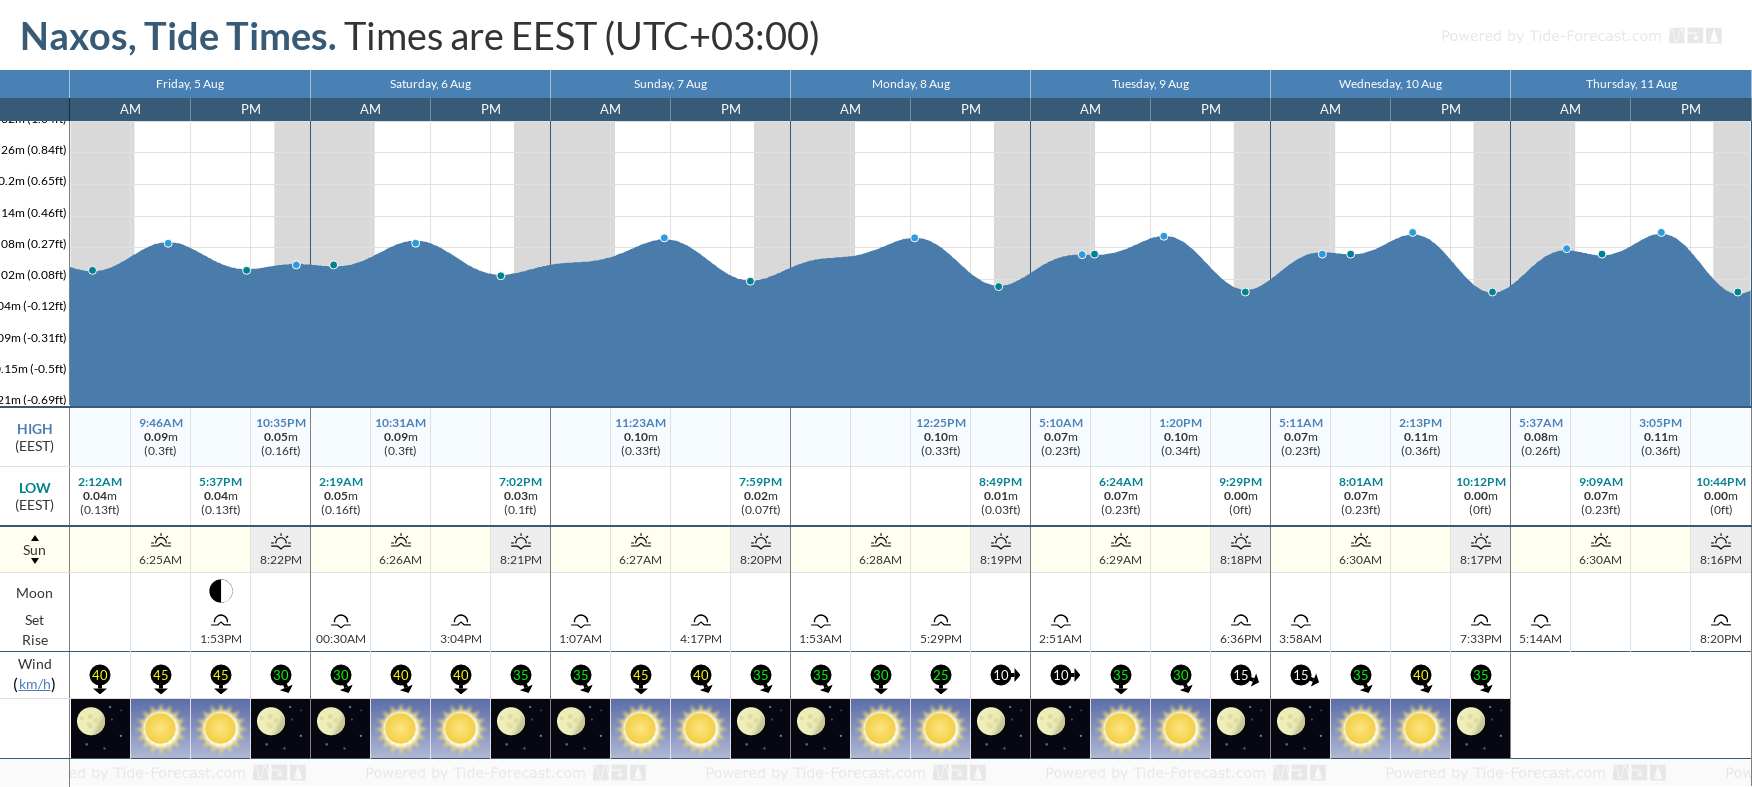 Naxos Tide Chart including high and low tide tide times for the next 7 days